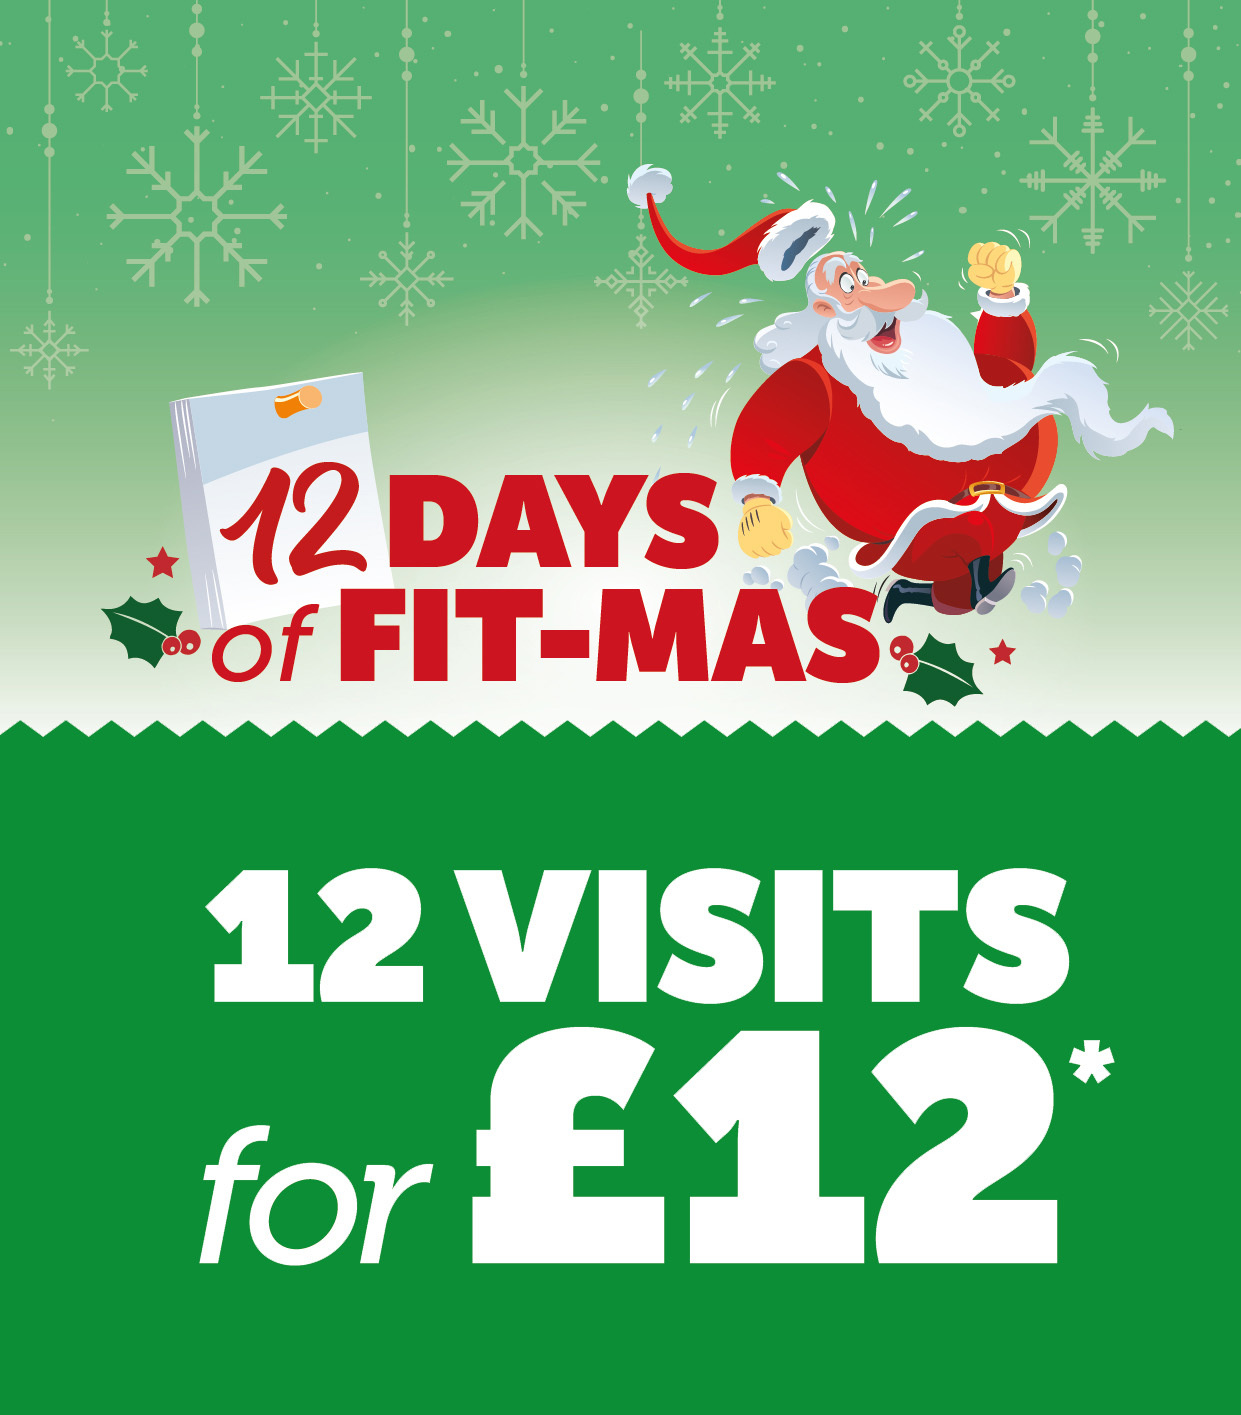 12 days of fit-mas 12 days for £12